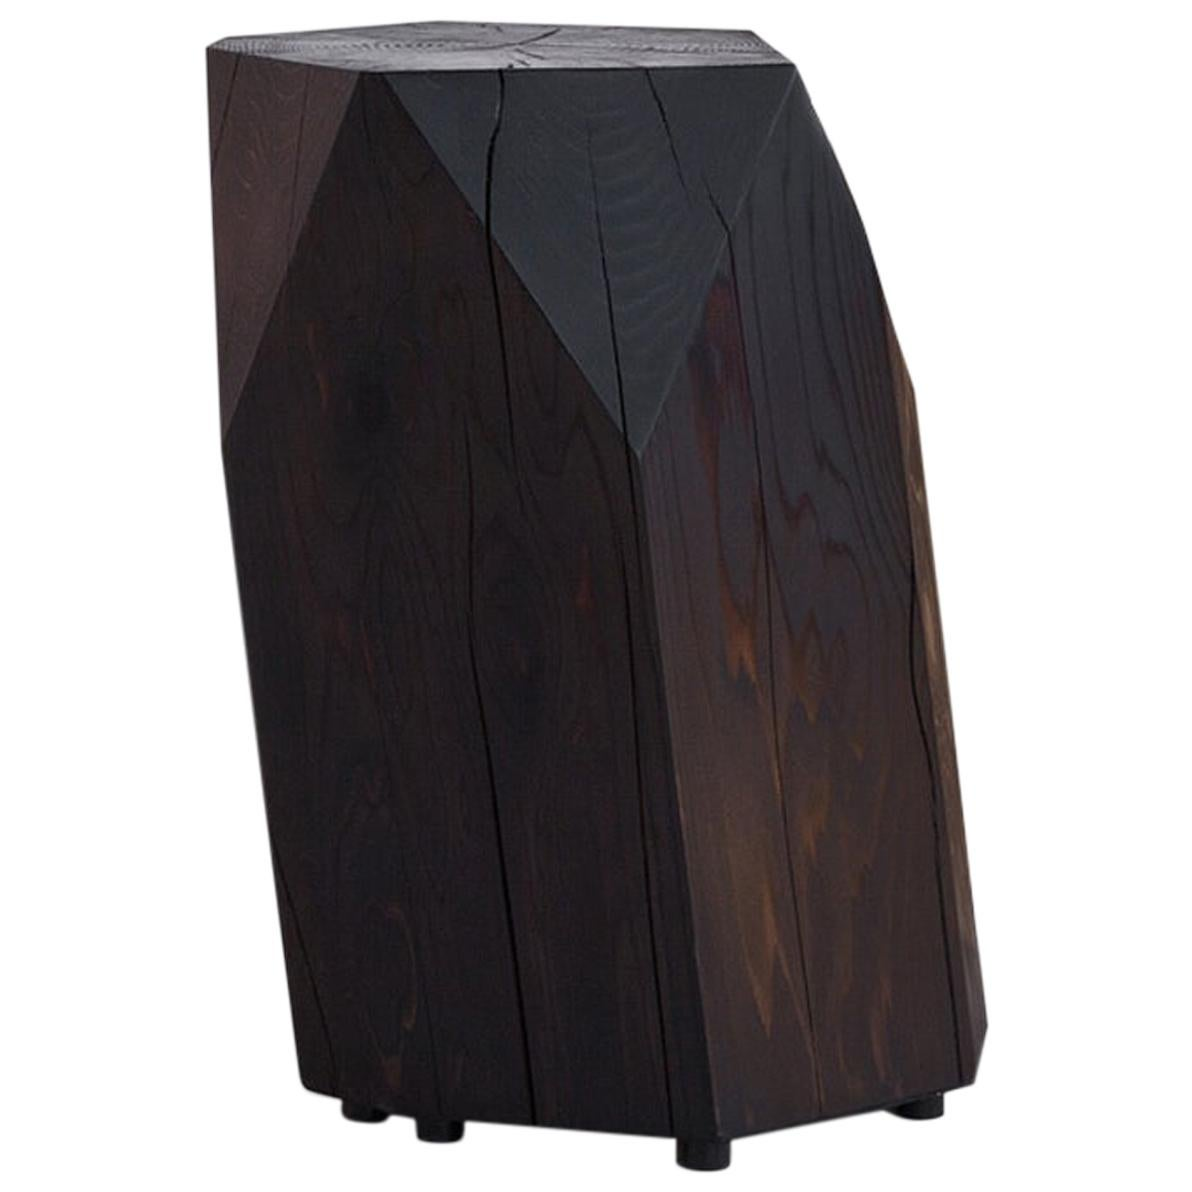 Stool/Side Table in Carbon Dyed Cedar by Hinterland Design